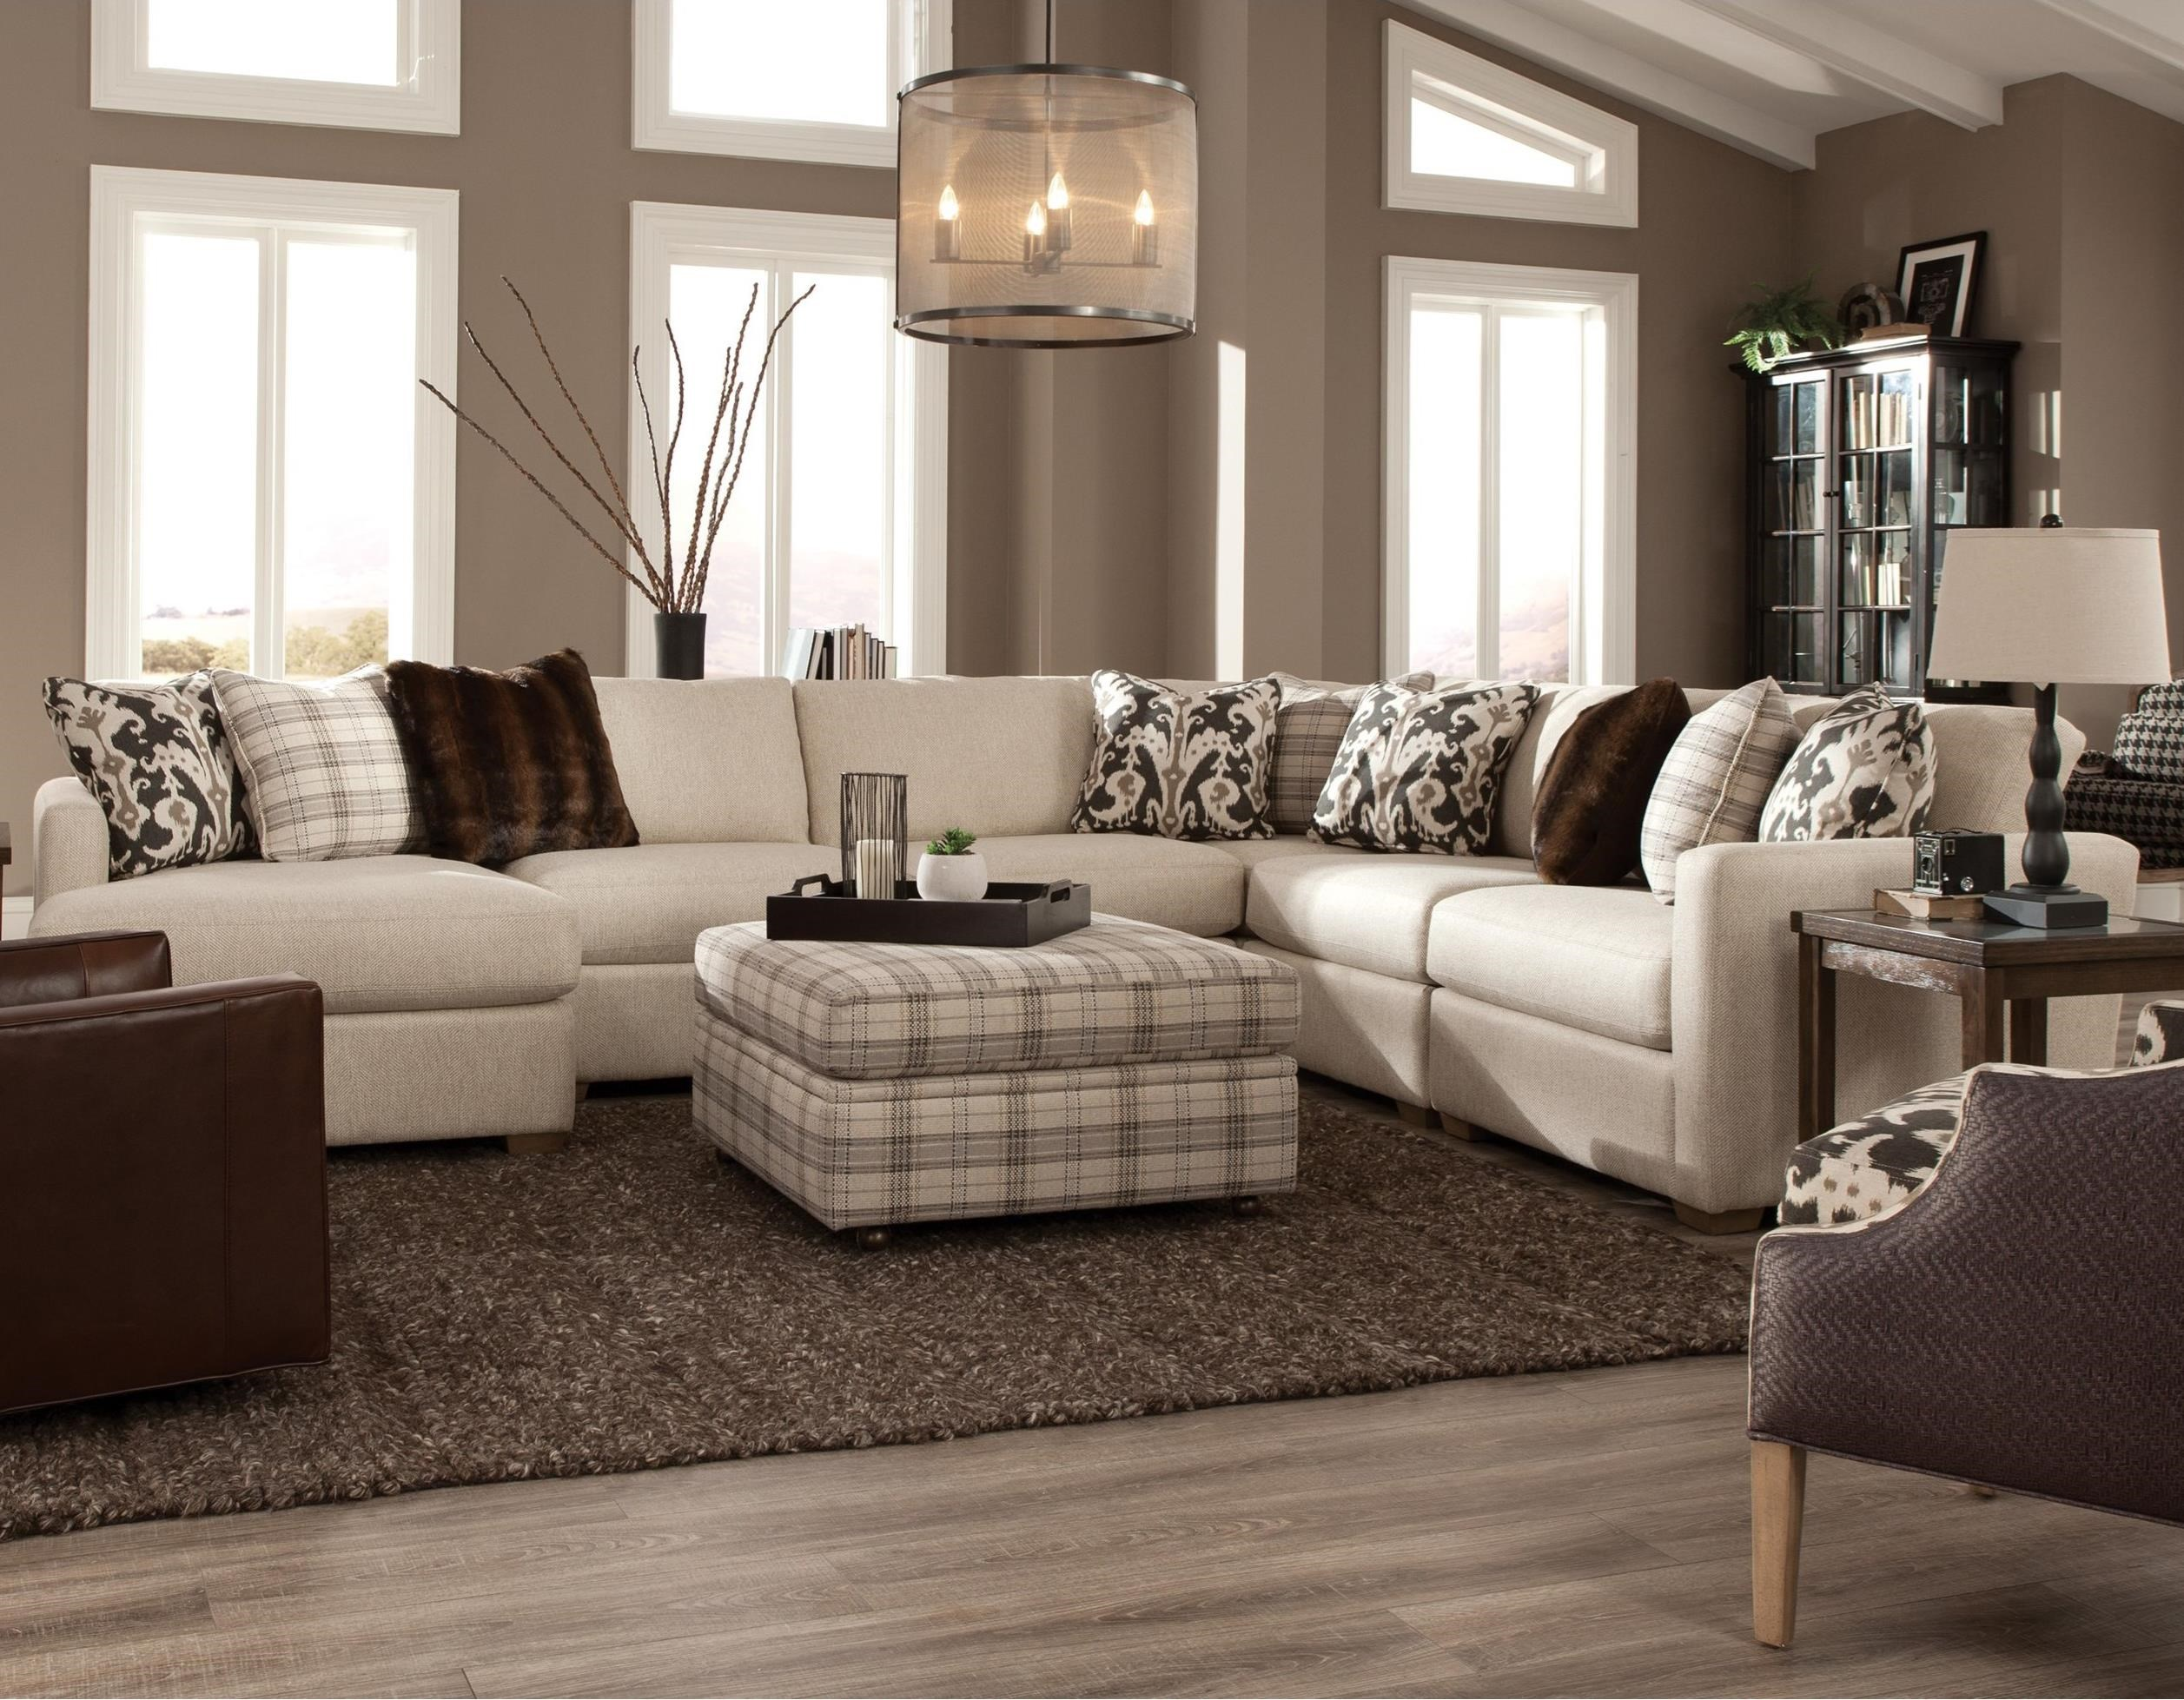 751100 5 Pc Sectional w/ LAF Chaise by Craftmaster at Jacksonville Furniture Mart